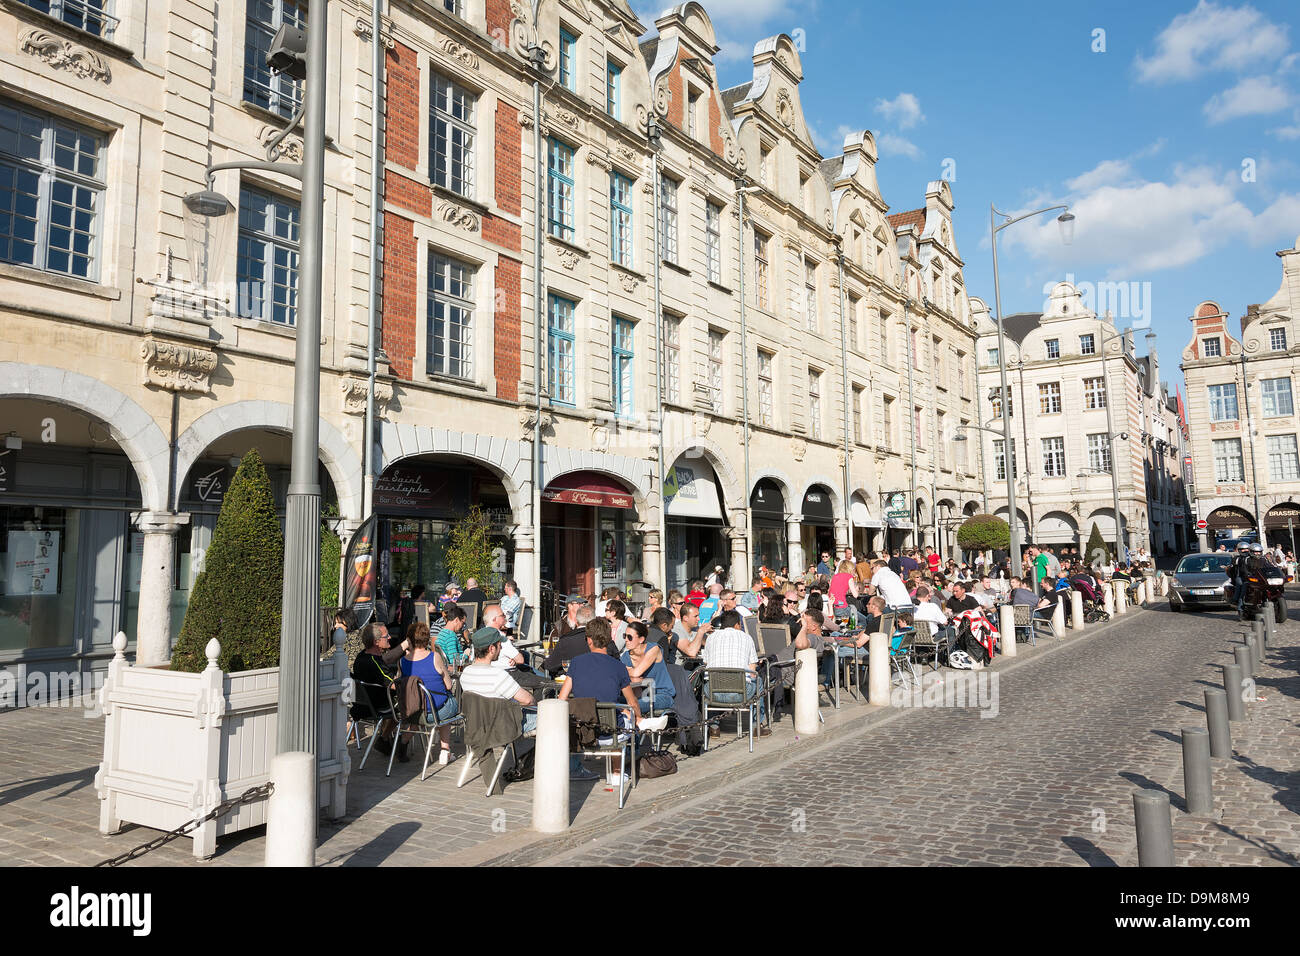 The Grande Place in Arras. Famous for its Flemish style architecture the main square of the town is popular with - Stock Image